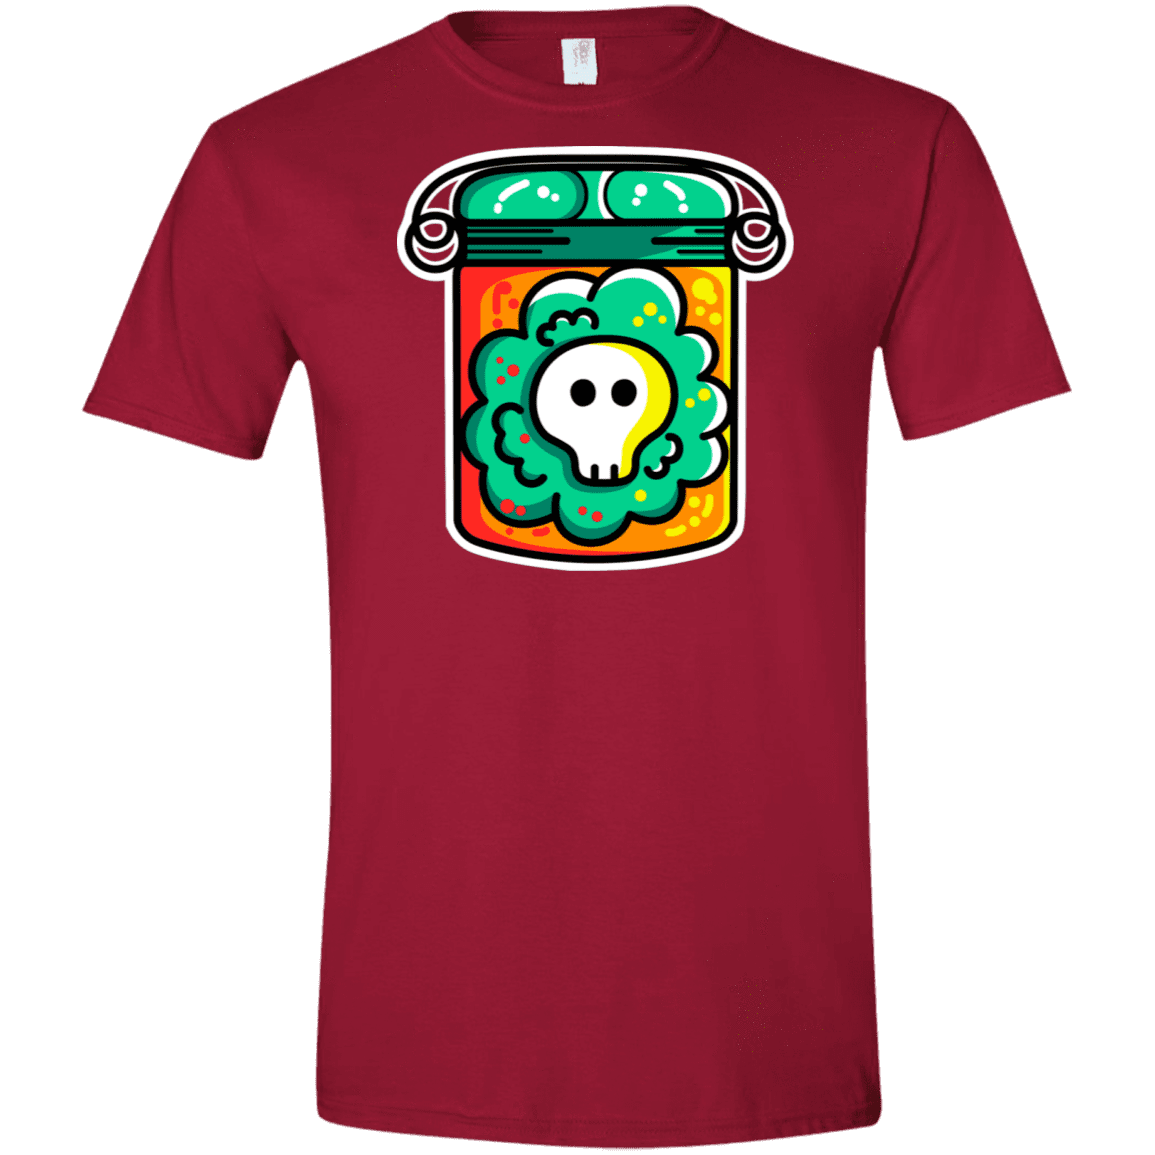 T-Shirts Cardinal Red / S Cute Skull In A Jar Men's Semi-Fitted Softstyle